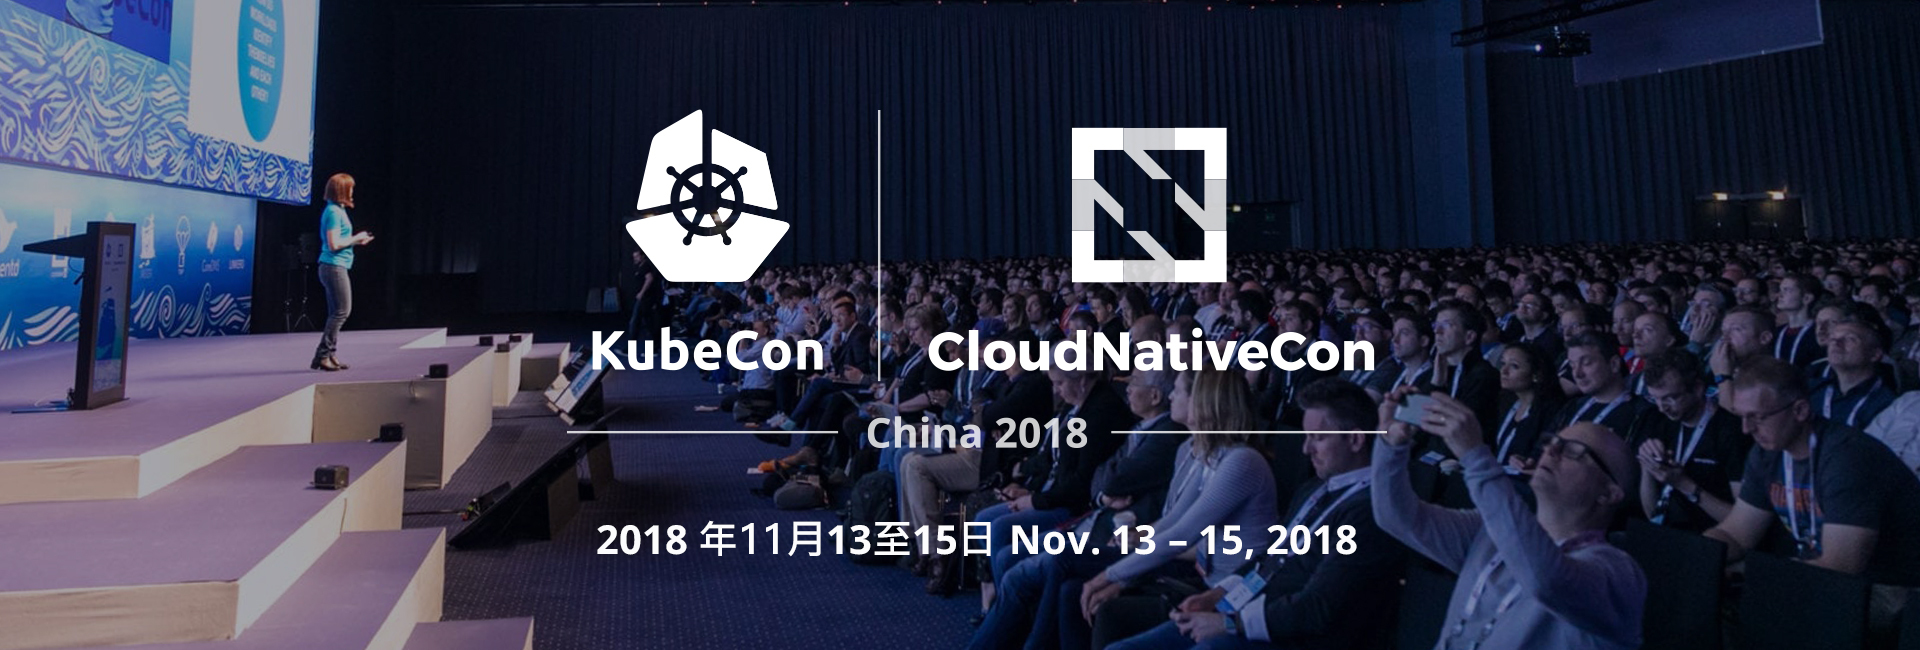 KubeCon + CloudNativeCon 2018 中国